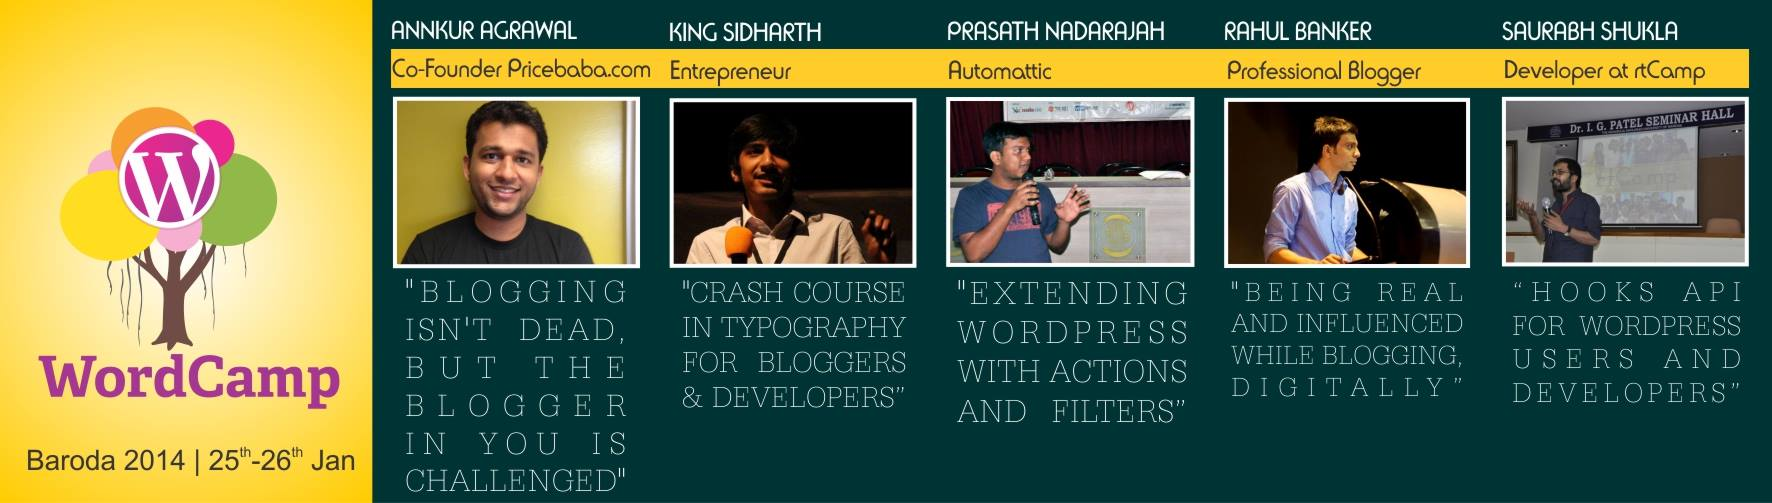 WordCamp Baroda 2014 speaker list 1